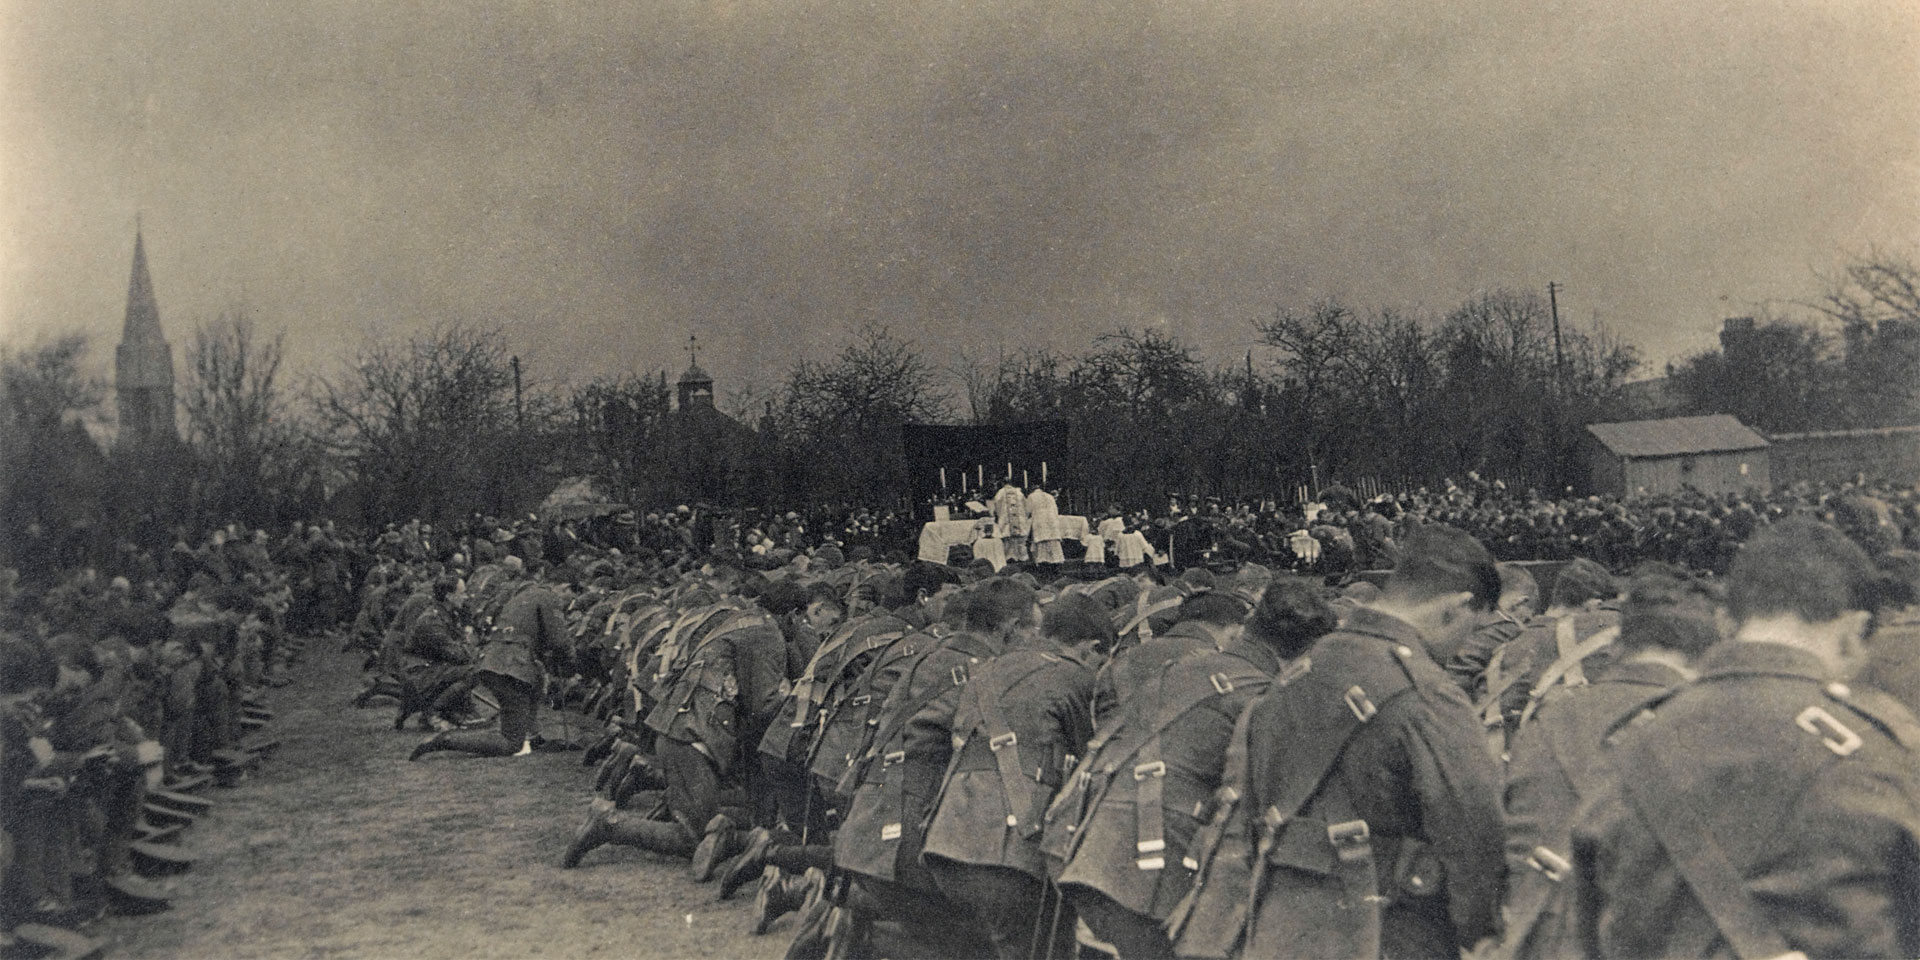 Soldiers kneeling at church parade, c1914